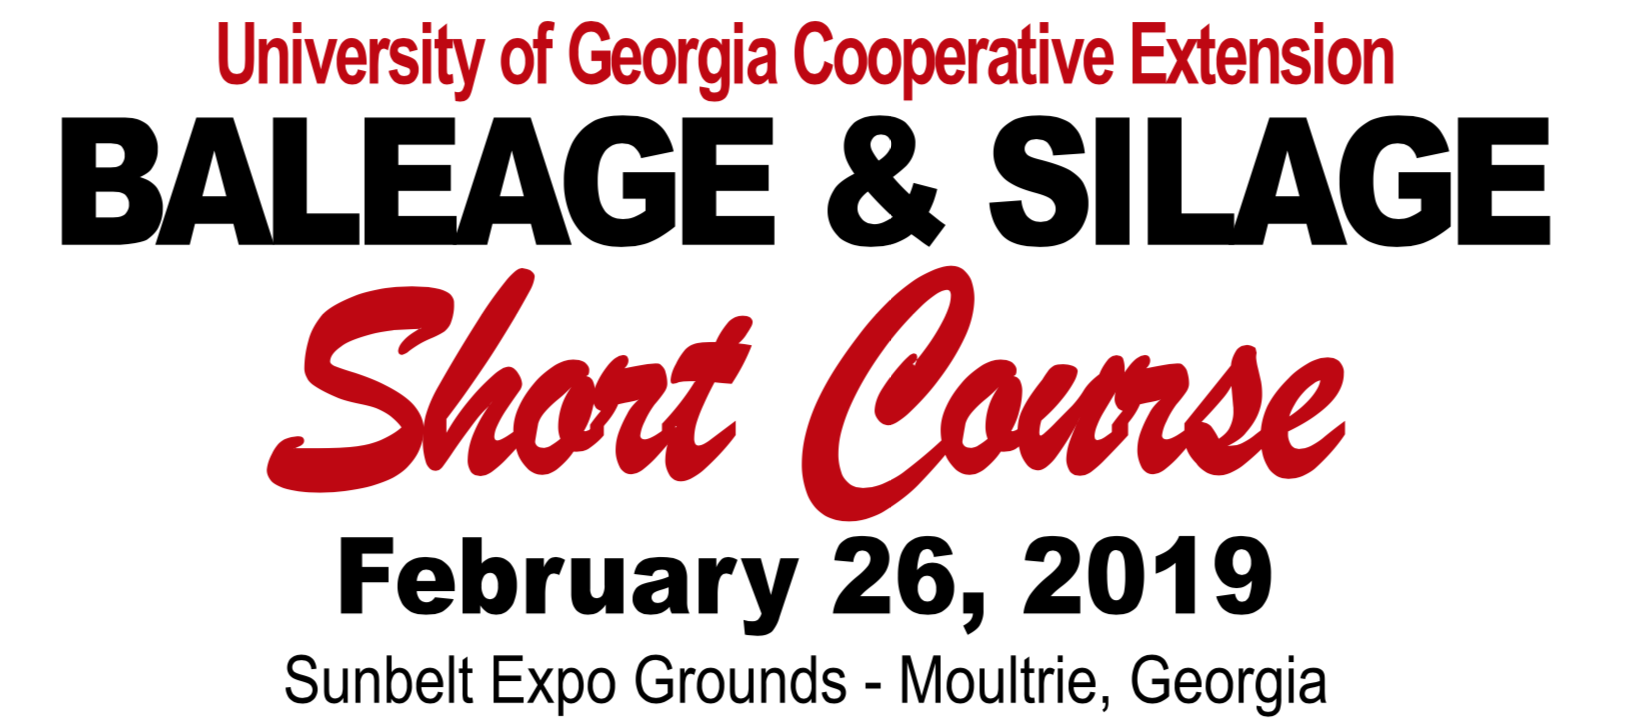 Baleage and Silage Short Course - Moultrie, GA